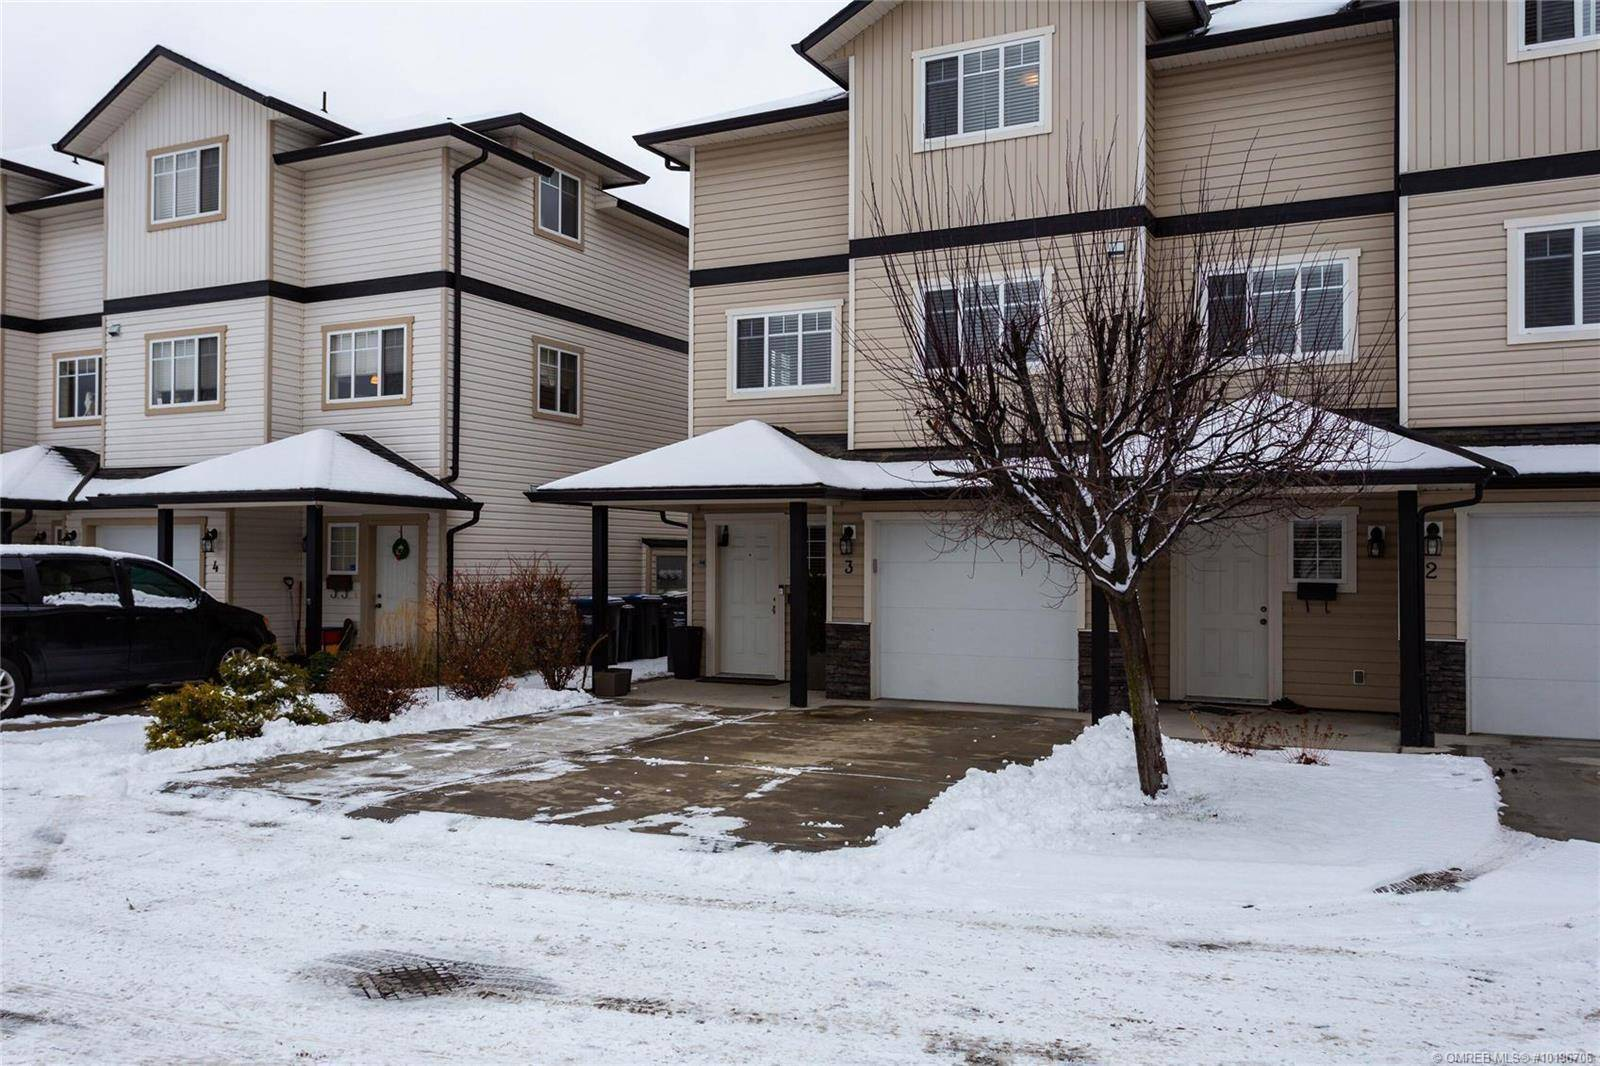 Townhouse for sale at 180 Mccurdy Rd East Unit 3 Kelowna British Columbia - MLS: 10196706